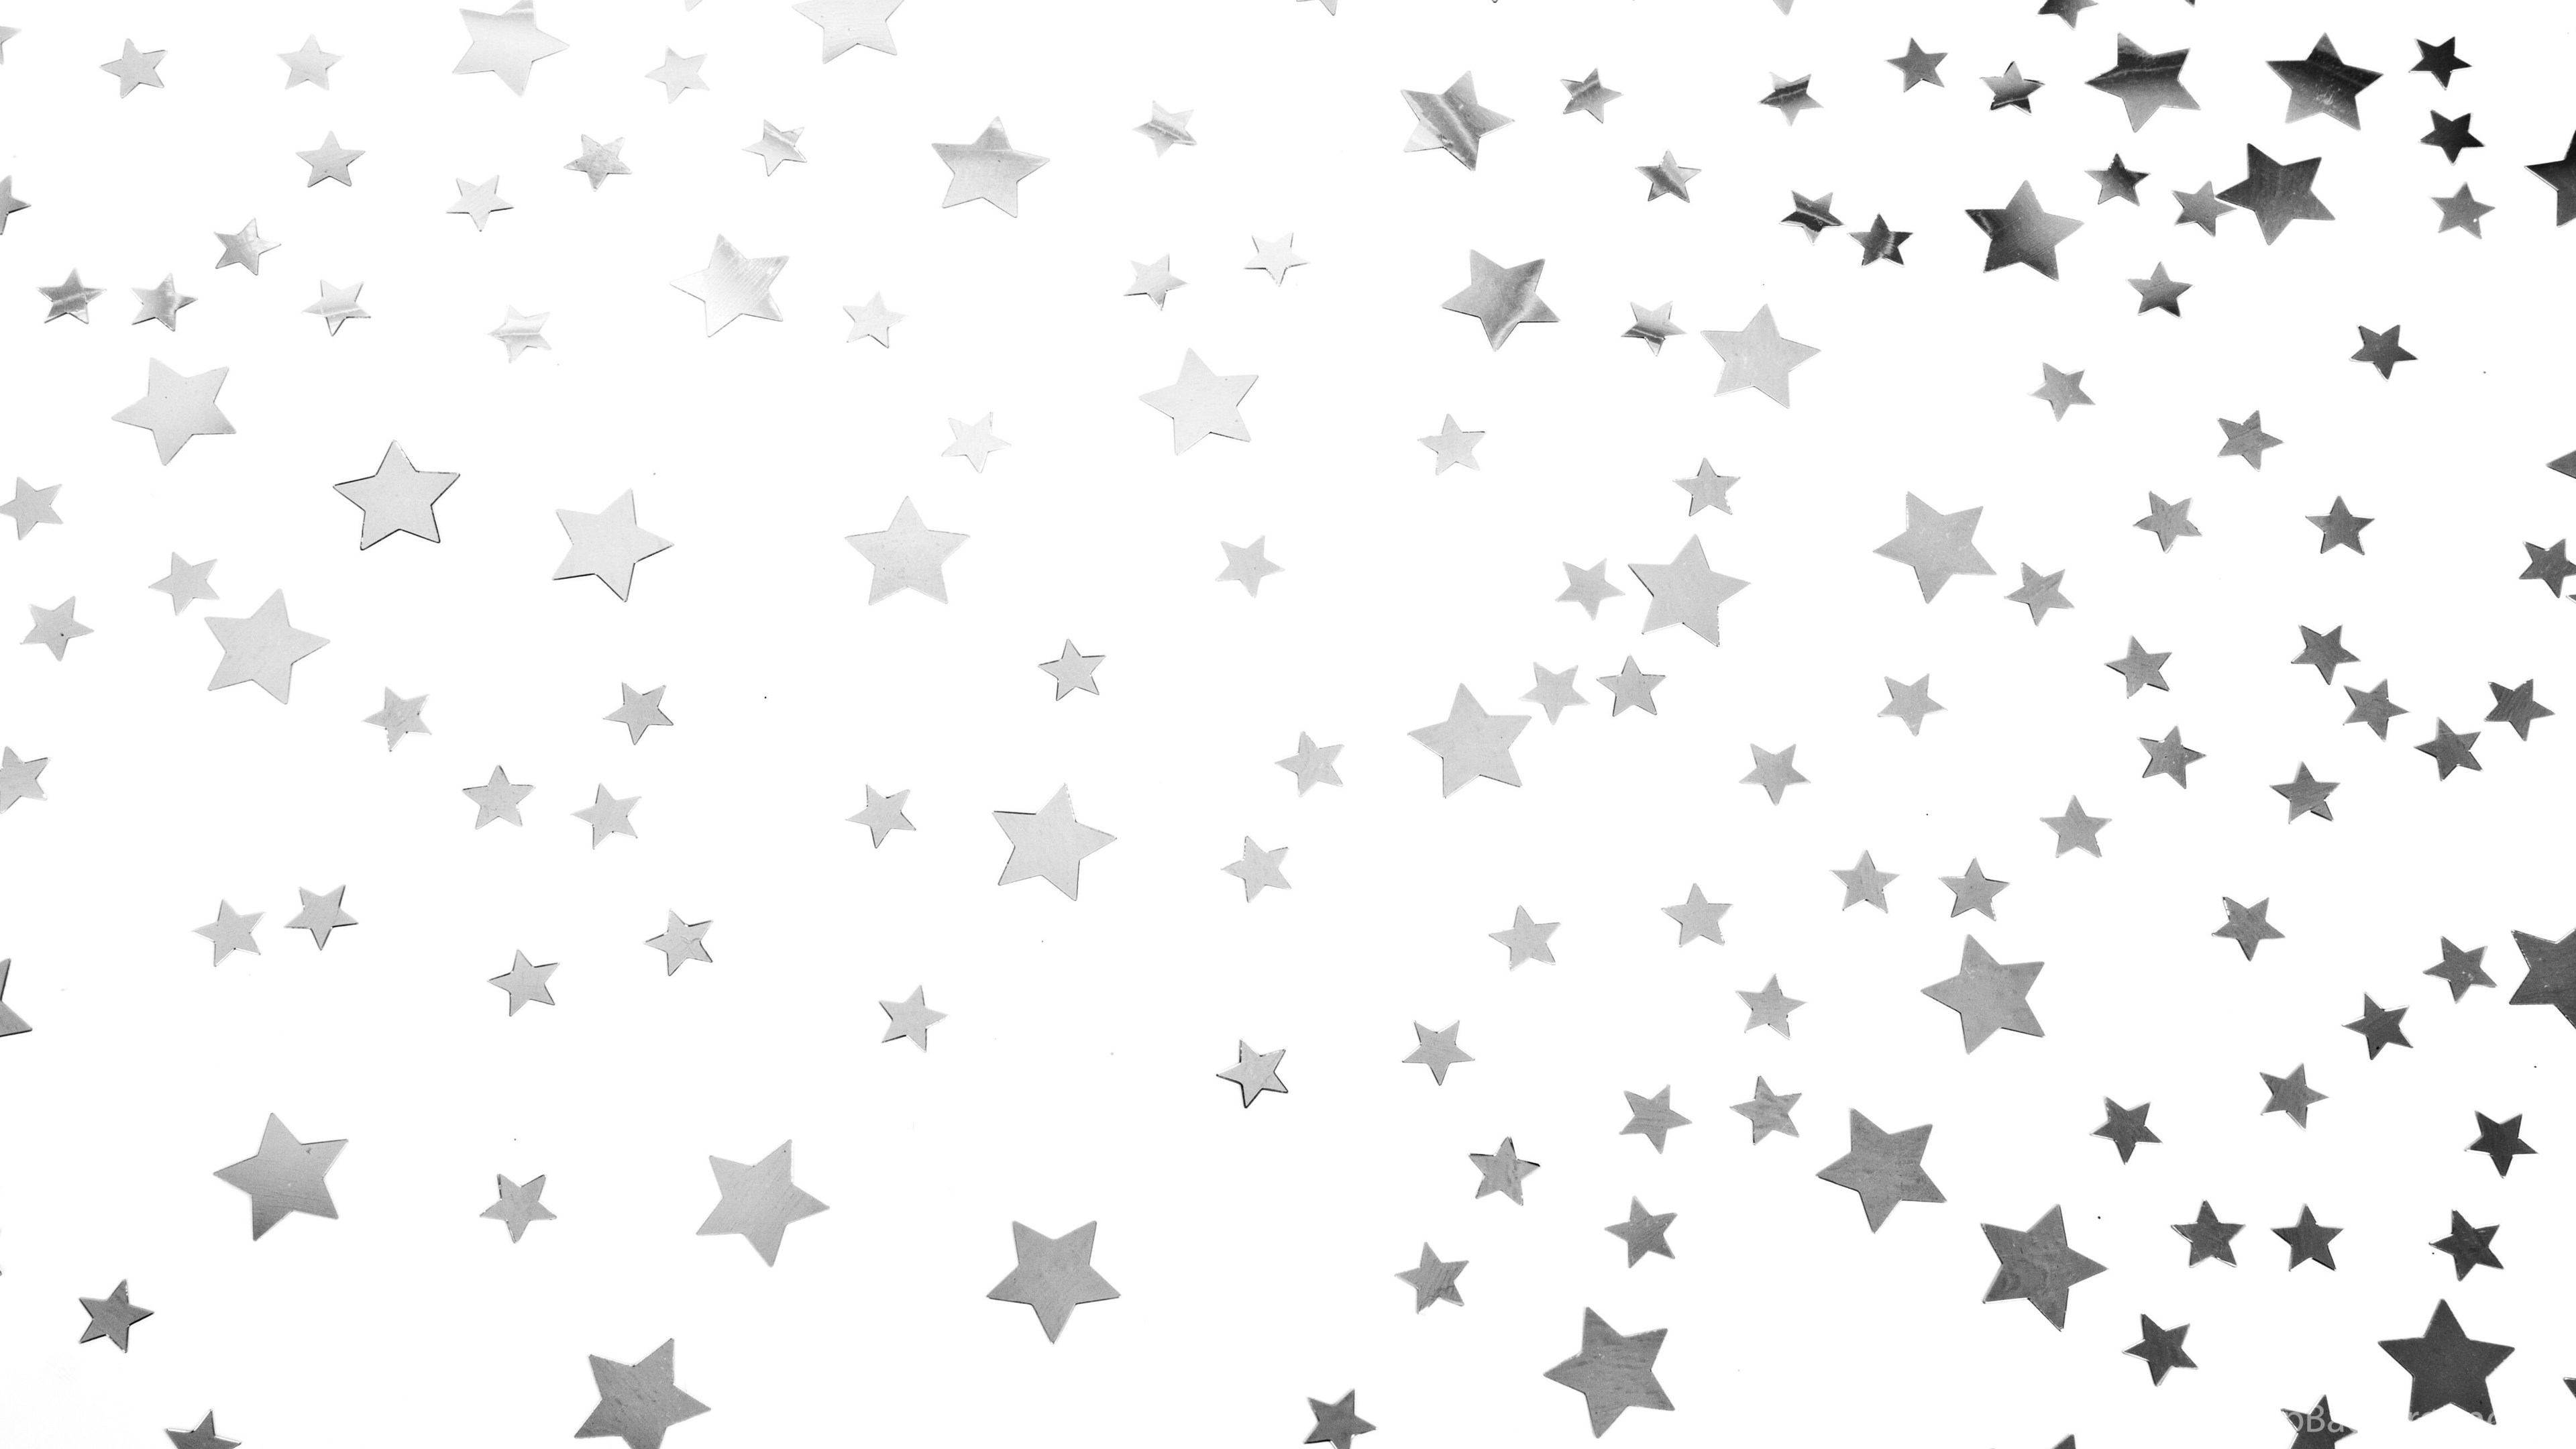 35 stars at xmas background images cards or christmas wallpapers wide voltagebd Image collections